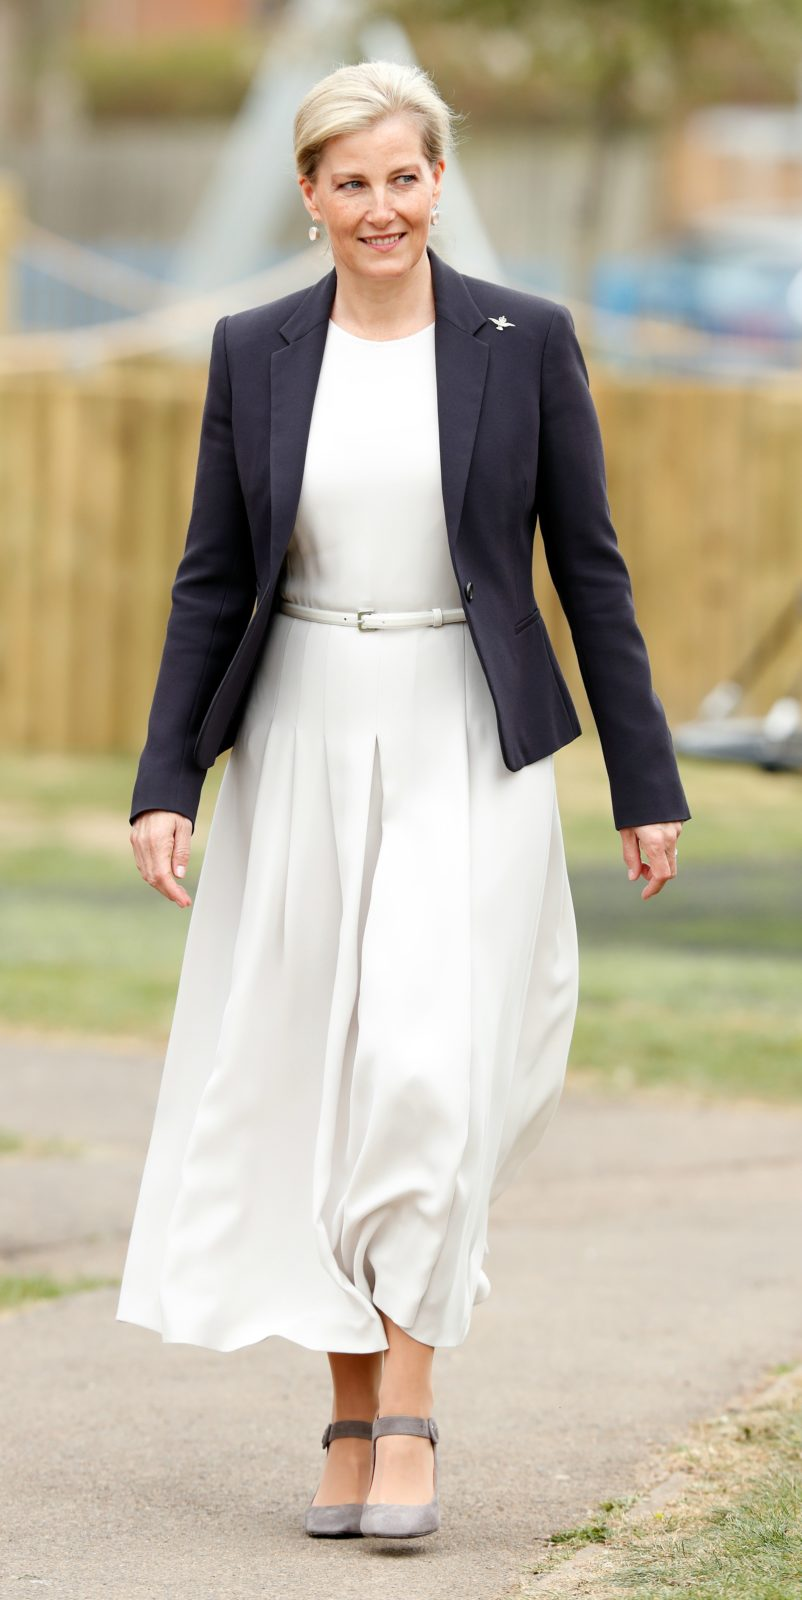 The countess chose a dark blazer to compliment the white dress. Source: Getty.